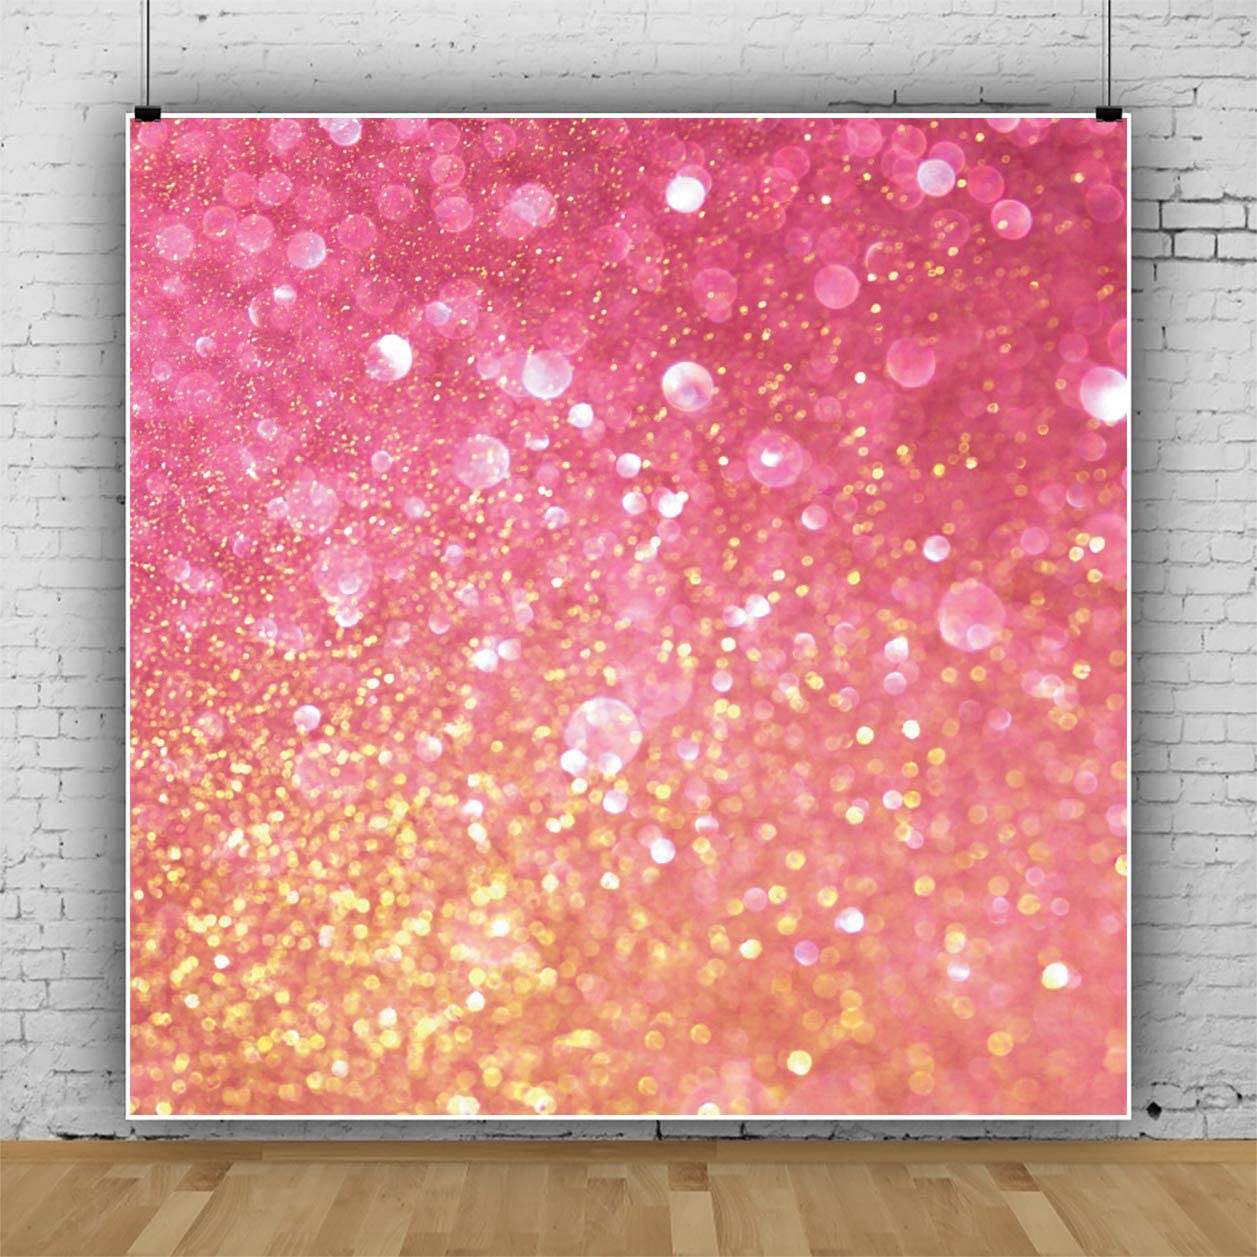 Yeele 6x6ft Glitter Sequins Backdrop Colorful Blink Glittering Gleaming Bokeh Photography Background Birthday Wedding Decoration Kids Adults Artistic Portrait Cake Smash Photo Shoot Props